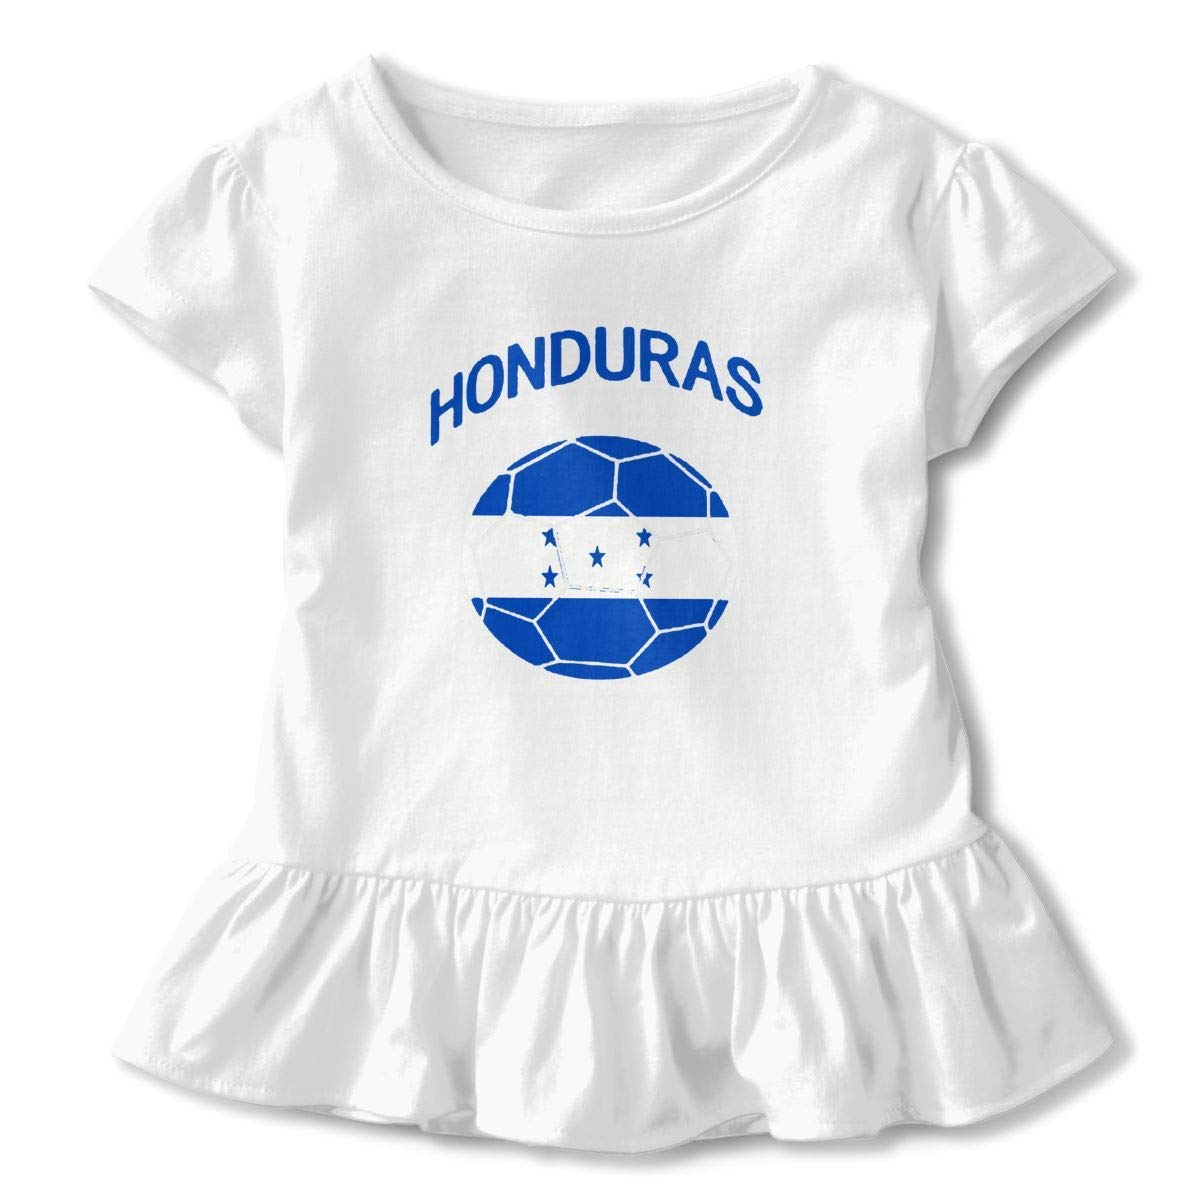 Kid T Shirt Honduras Soccer 3D Tee Baseball Ruffle Short Sleeve Cotton Shirts Top for Girls Kids